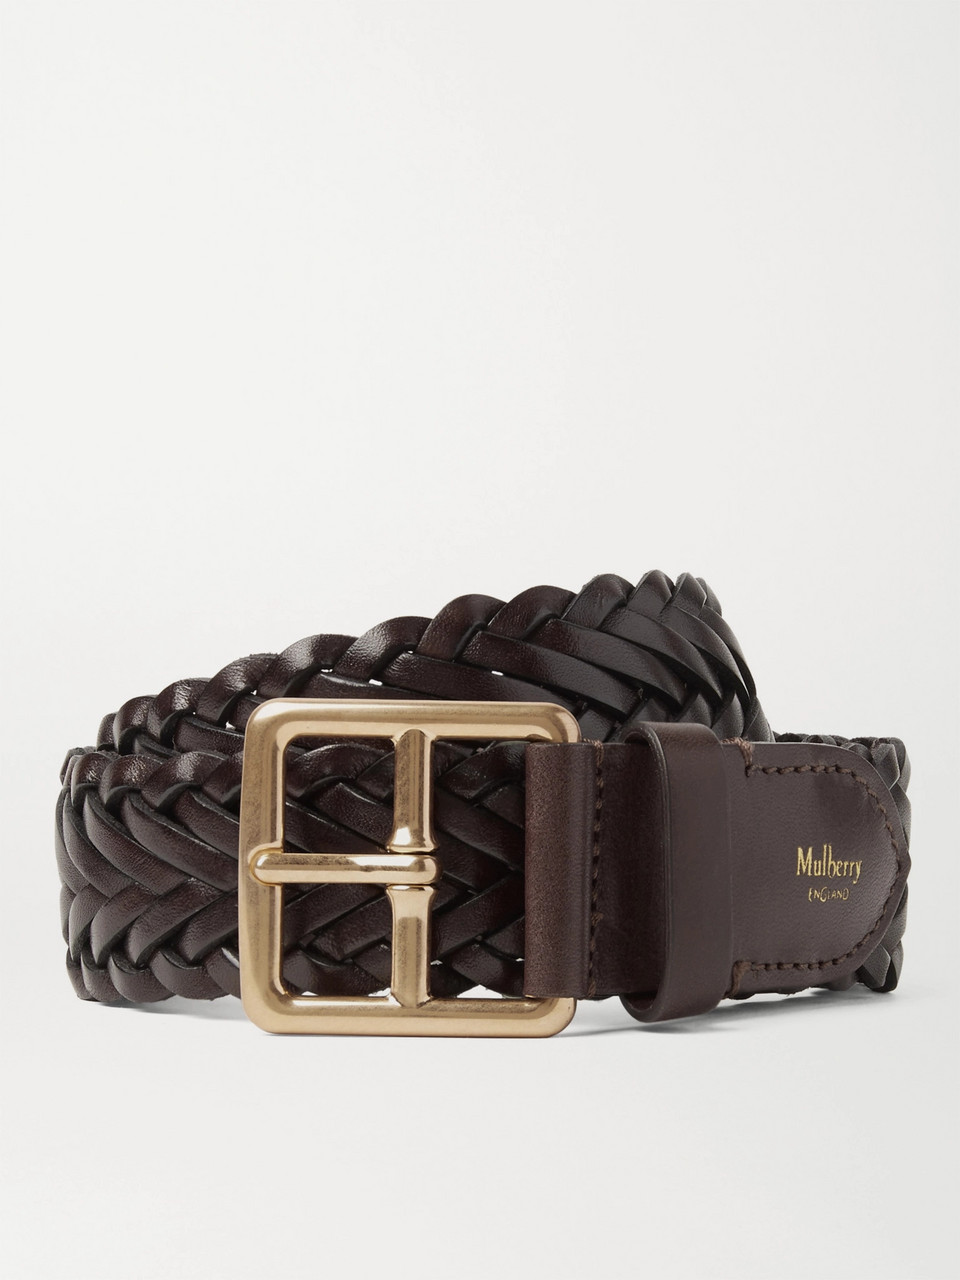 Mulberry 4cm Brown Woven Leather Belt